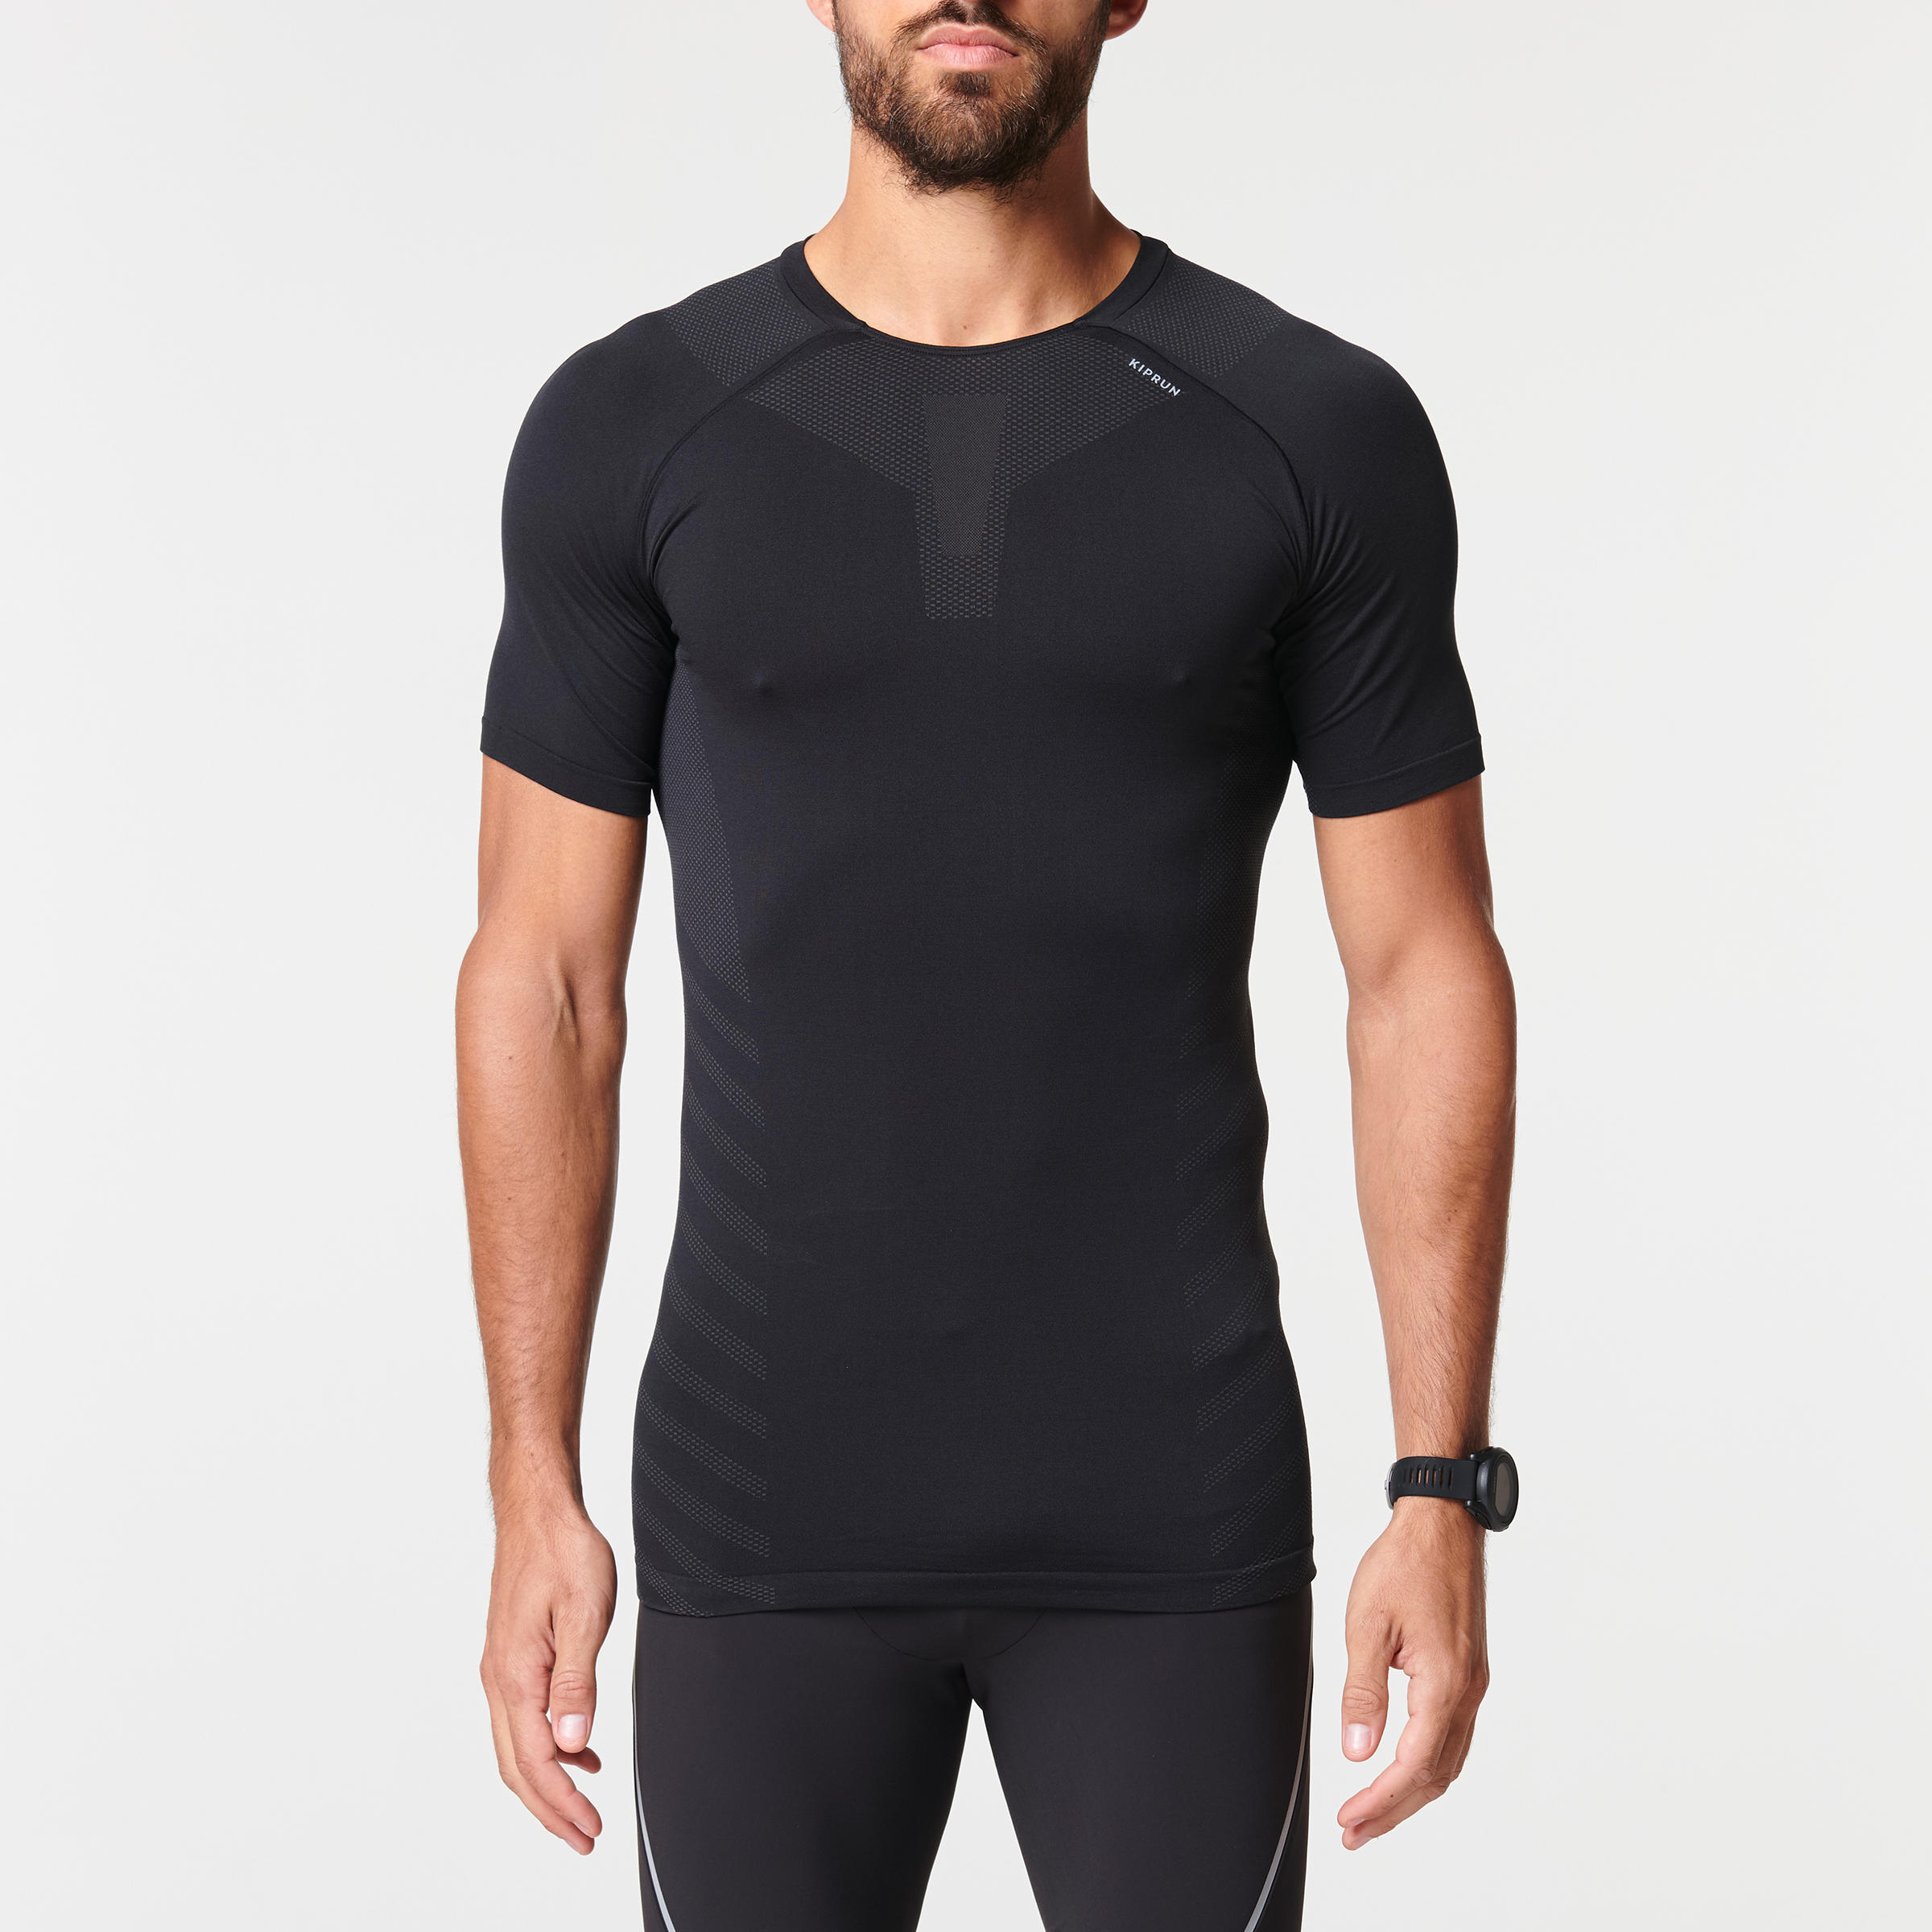 Tricou KIPRUN Light Bărbați imagine